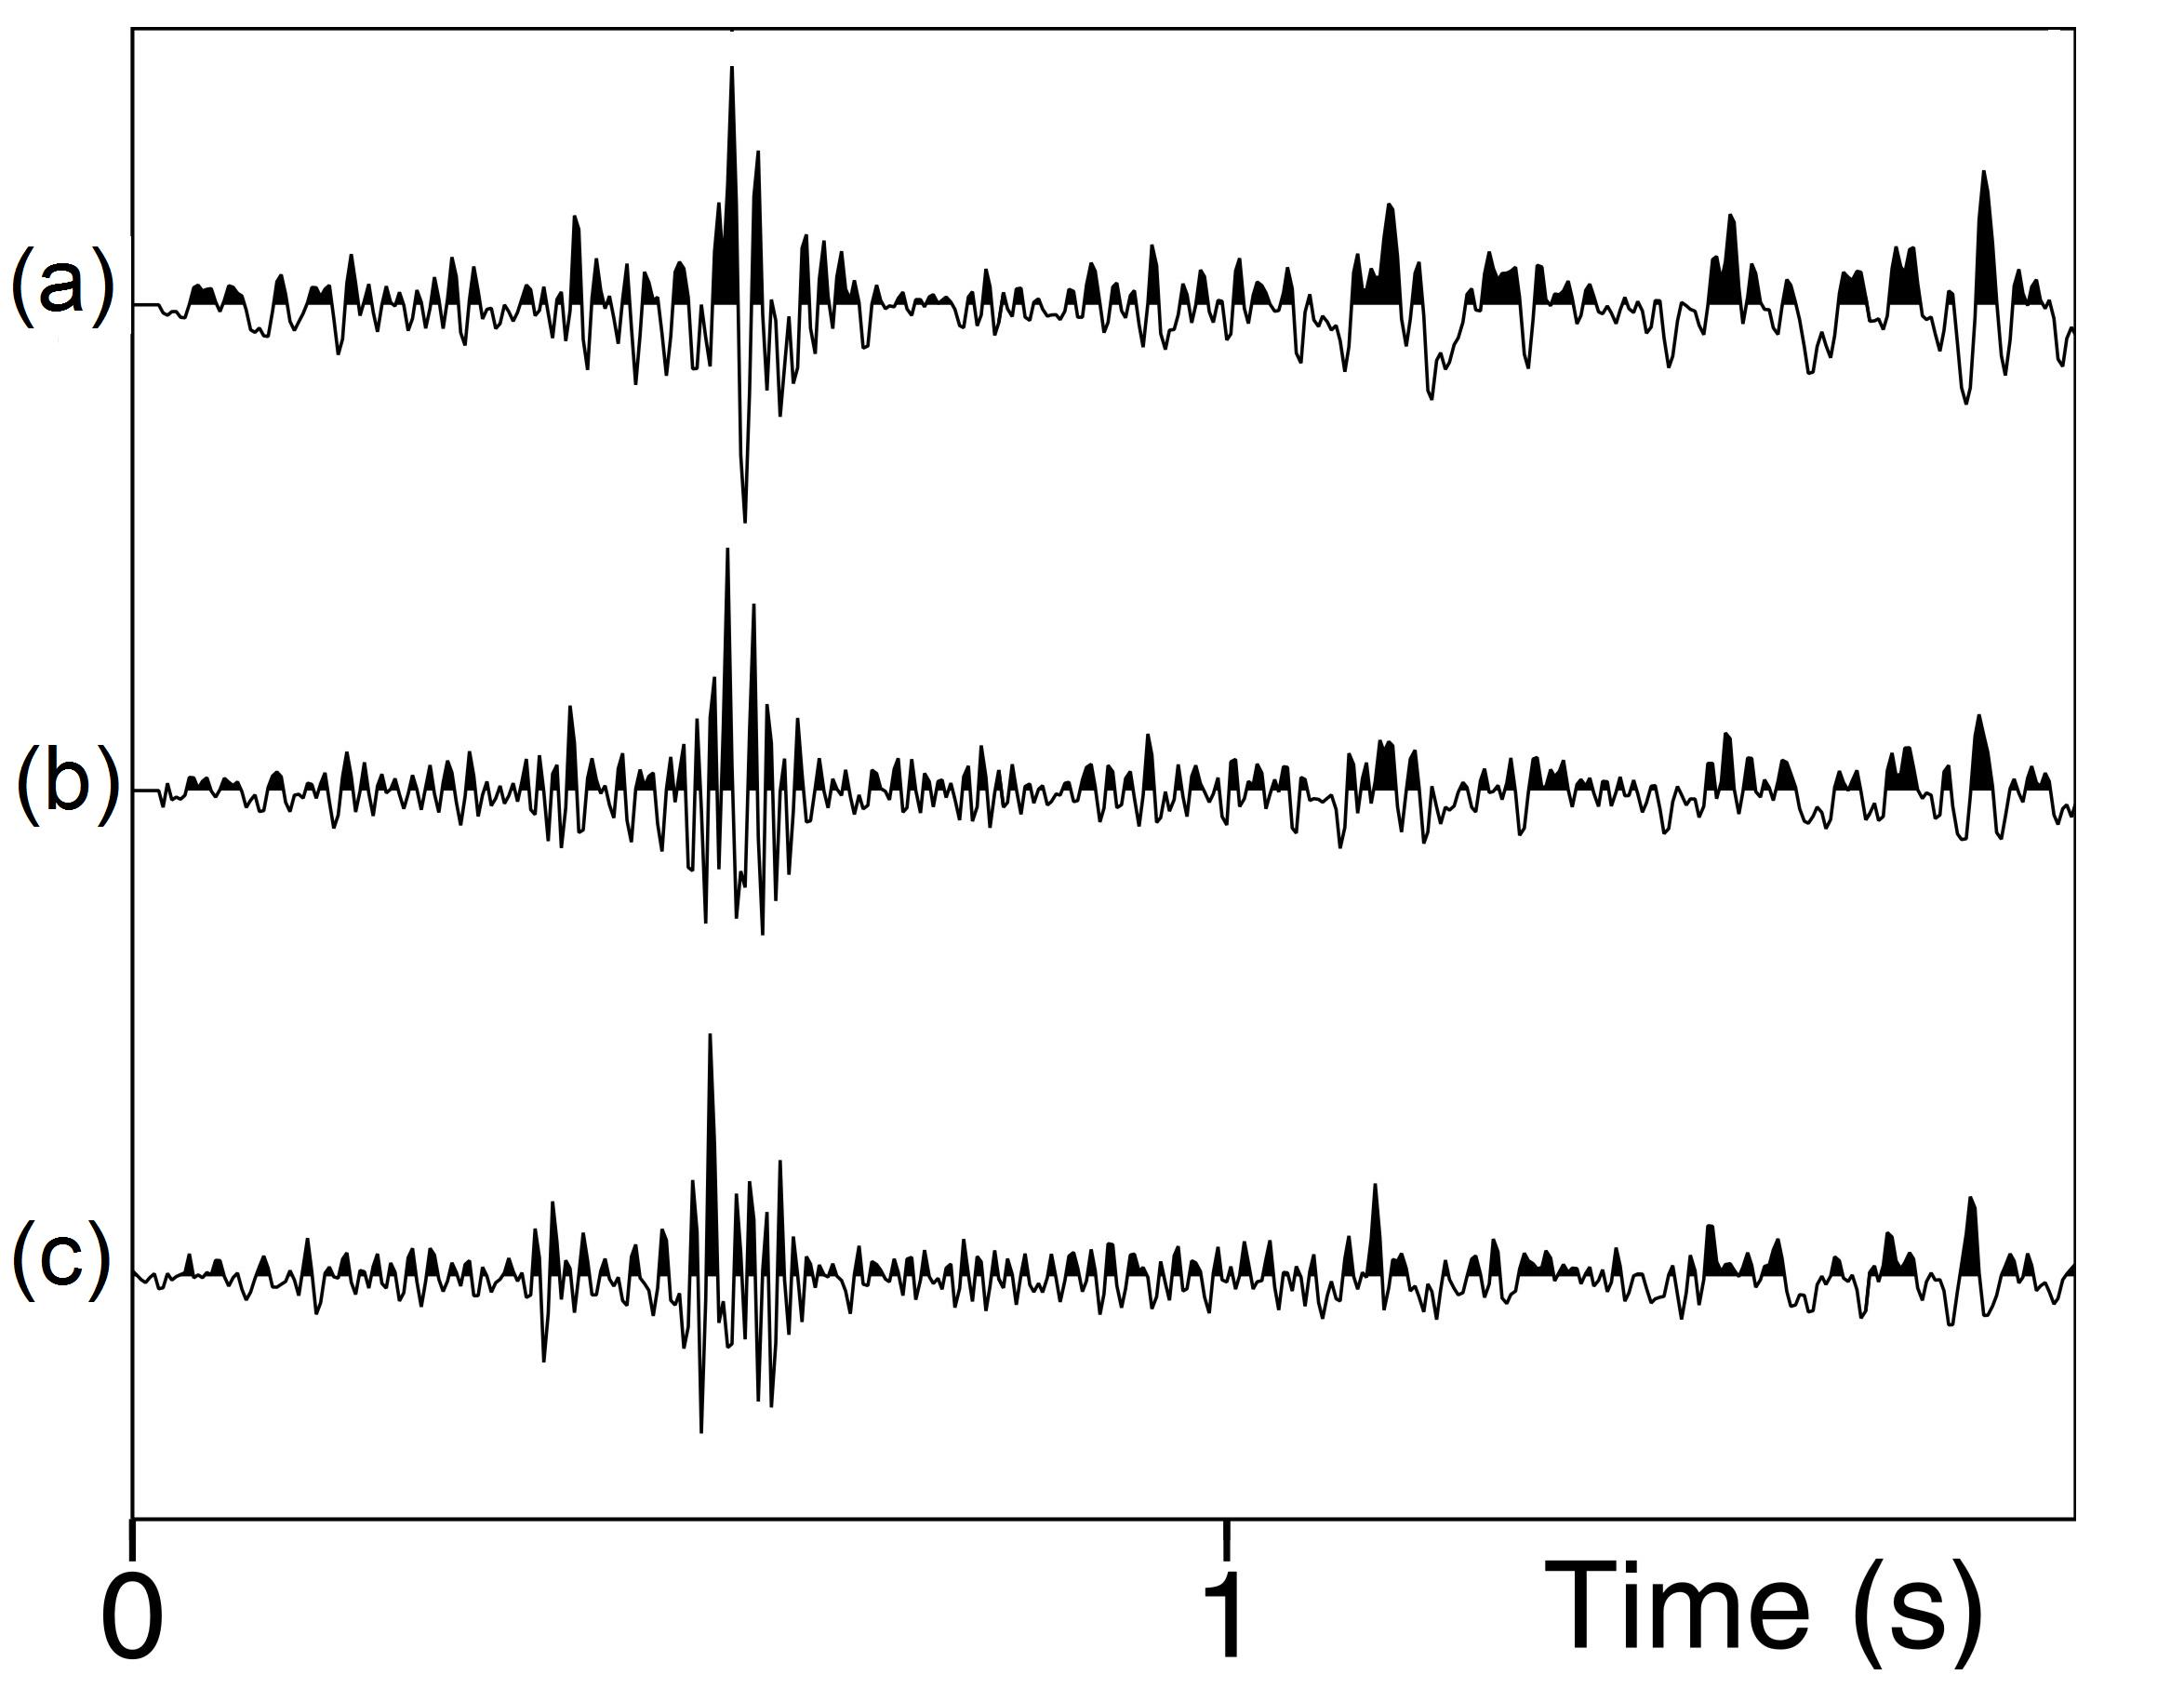 DESIGN OF MIXED PHASE INVERSE FILTERS 4 Figure 8: A real seismic trace in (a), result of minimum-phase deconvolution in (b) and the mixed-phase deconvolution in (c).